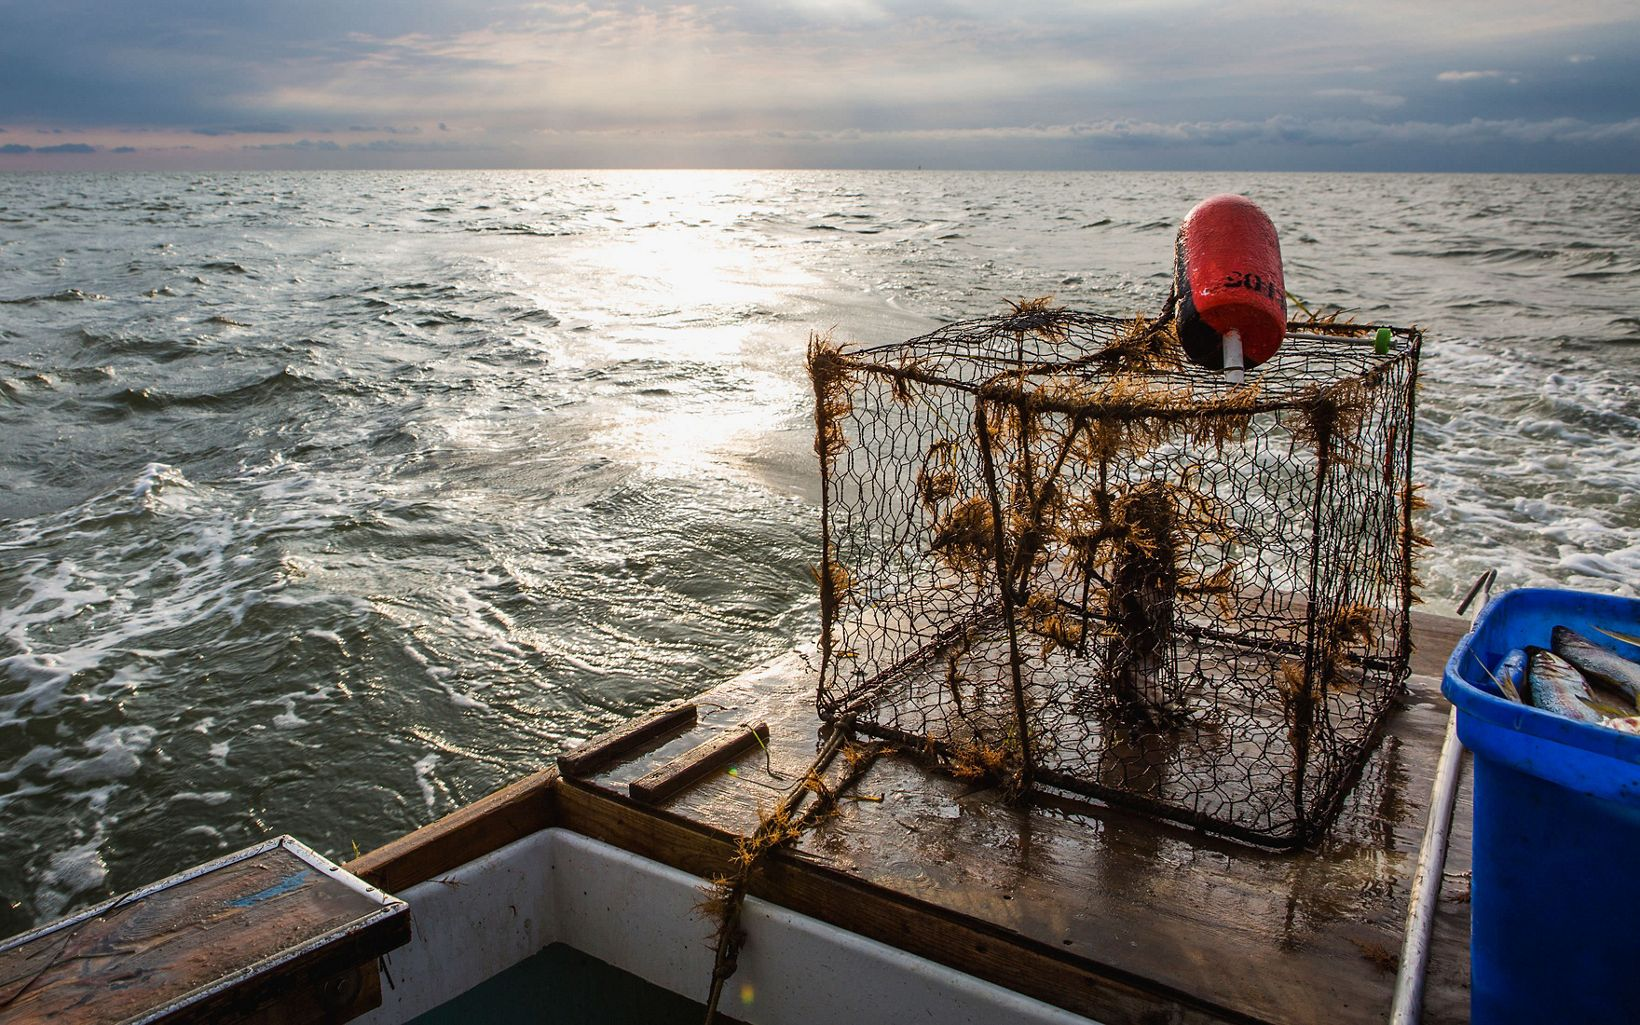 A bucket of fish and a crab cage sit on the back of a boat floating in the Chesapeake Bay.